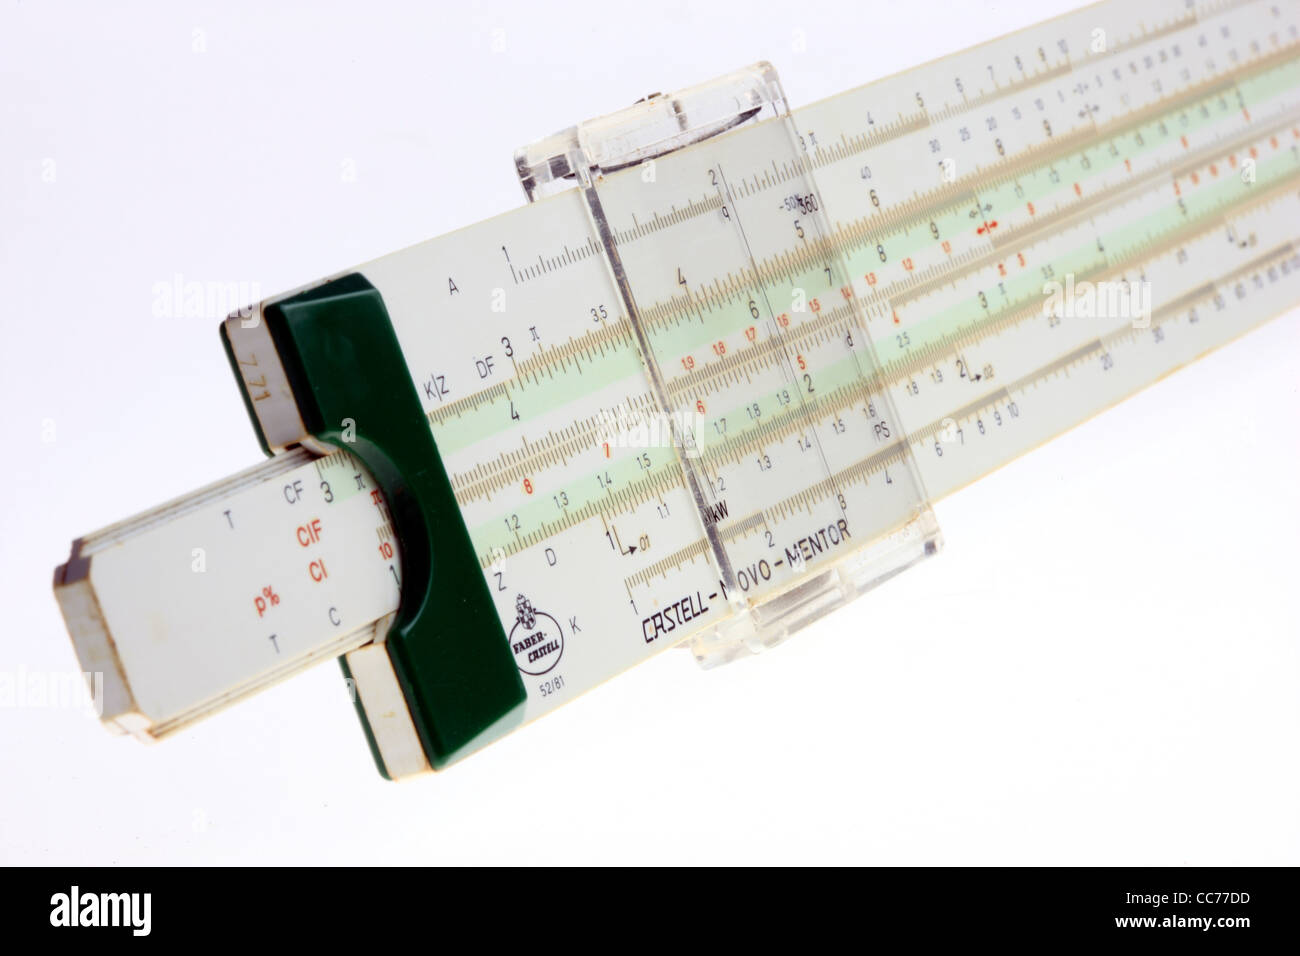 mathematics helper tool slide rule sliding rule stock photo mathematics helper tool slide rule sliding rule